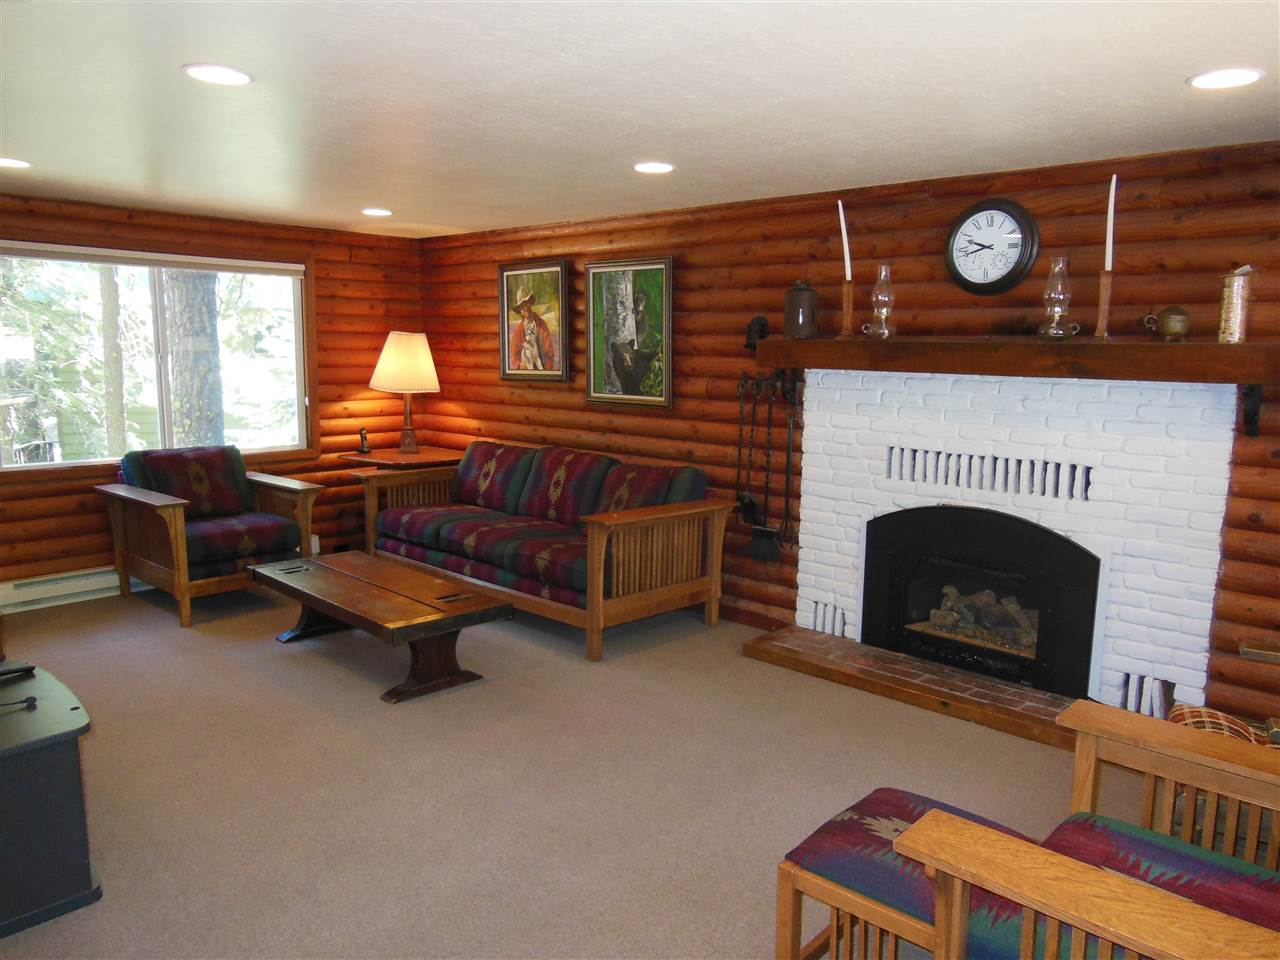 Additional photo for property listing at 1195 Holly Road 1195 Holly Road Tahoe City, California 96145 Estados Unidos